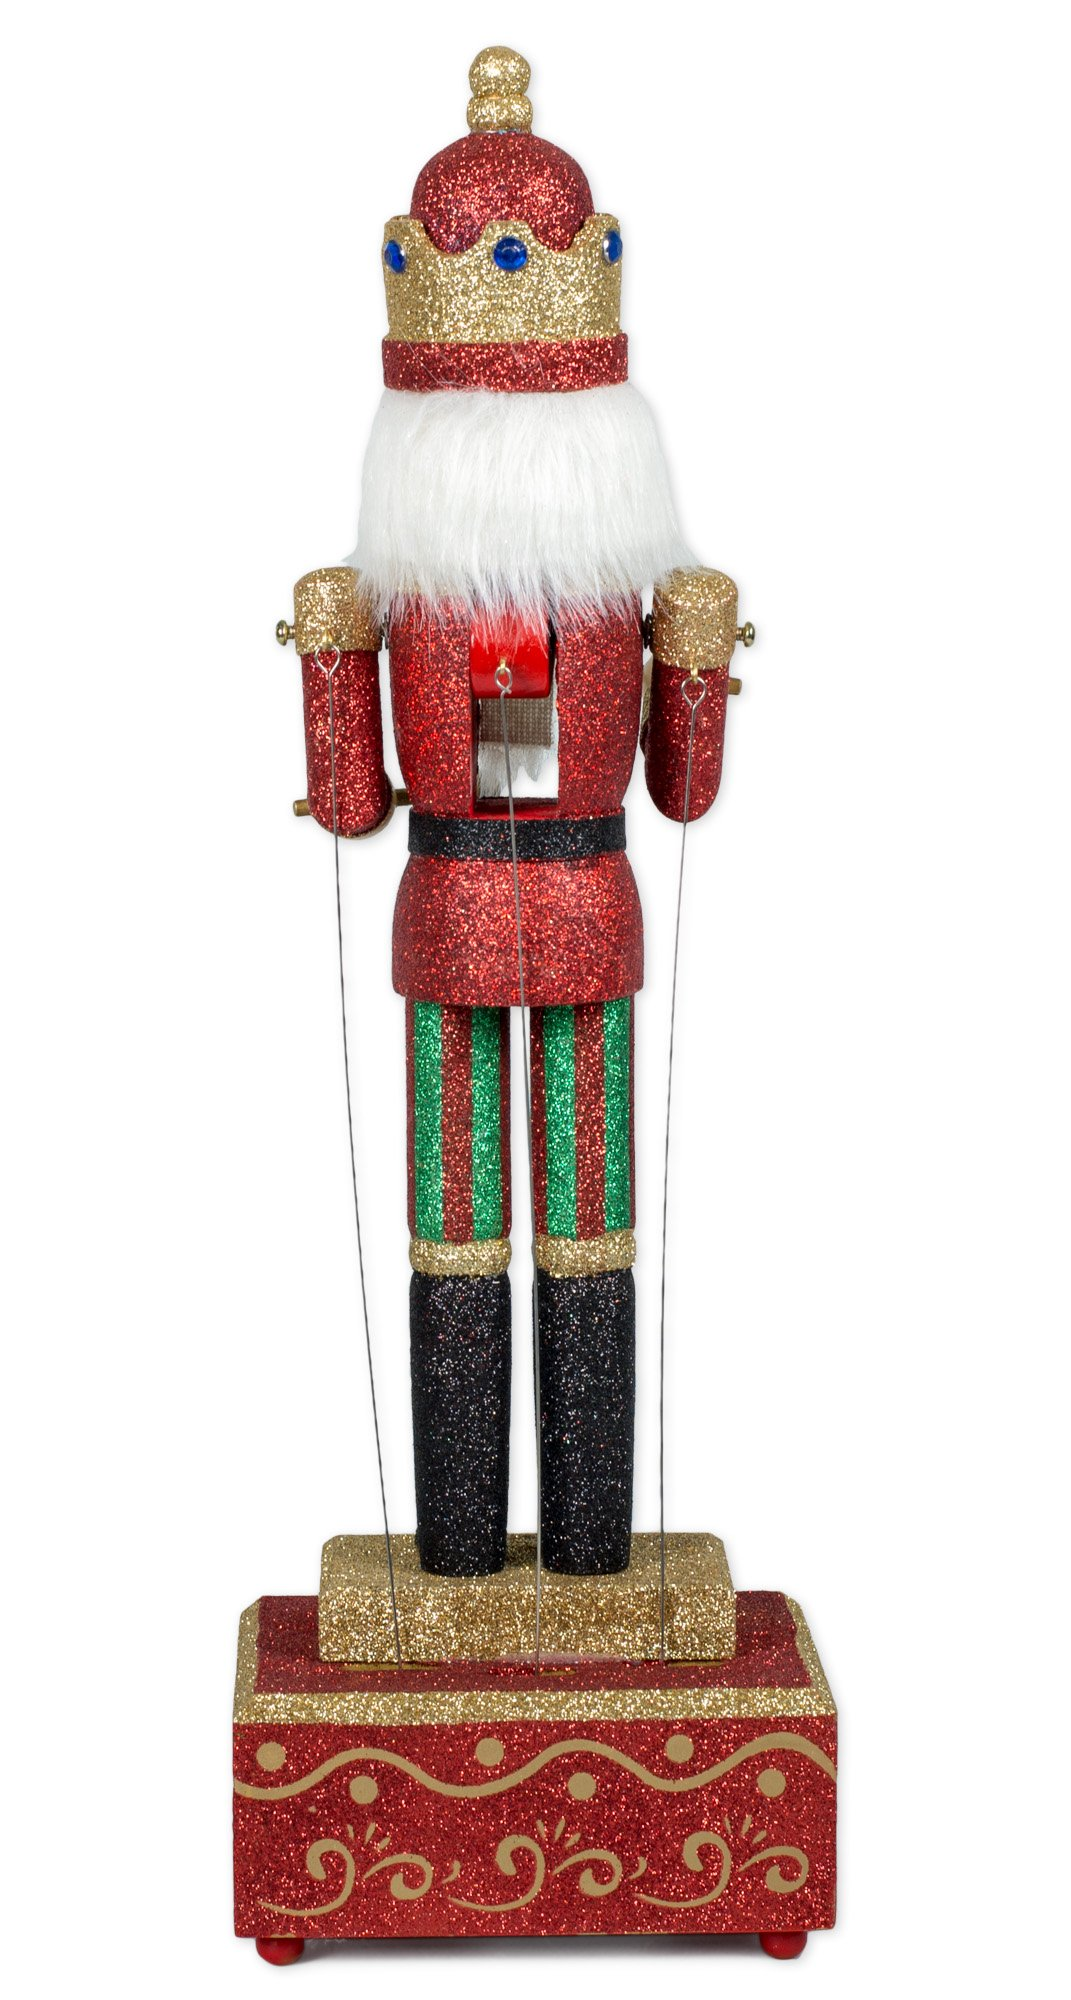 MusicBox Kingdom Big Wooden Nutcracker with Glitter Moves The Arms to The Tune of ''Nutcracker Suite'' Decorative Item by Musicbox Kingdom (Image #4)